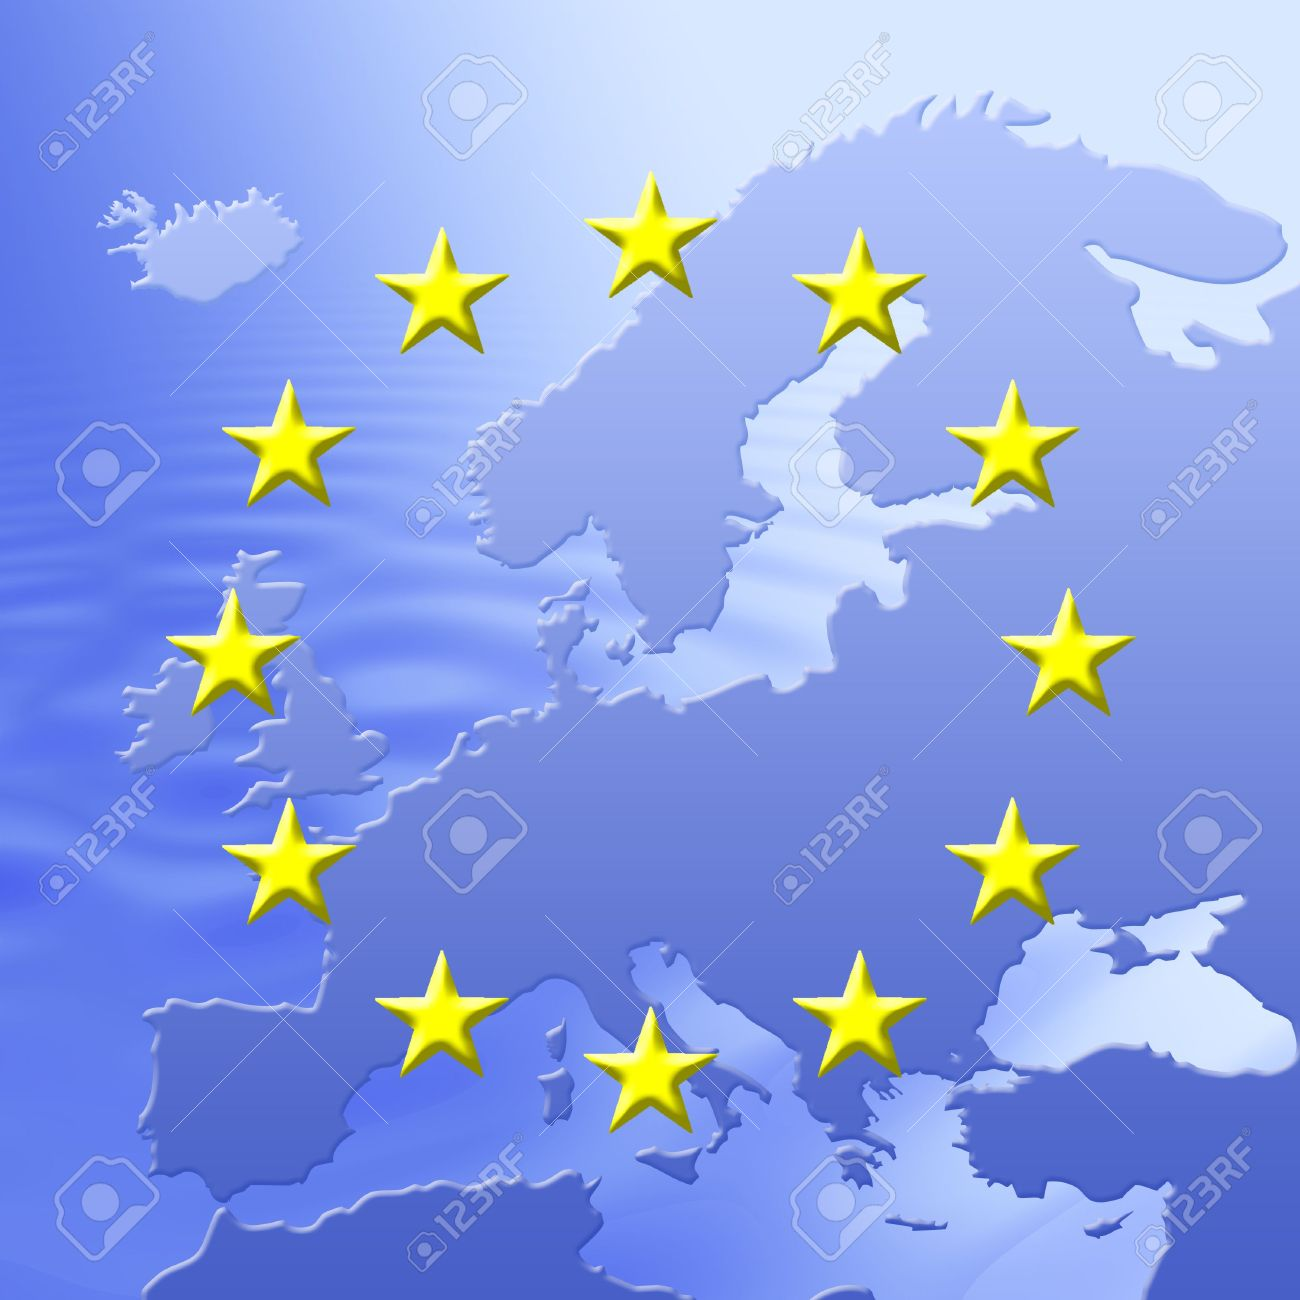 Continent Of Europe Map With EU Stars Symbolic Illustration – Map of the European Continent